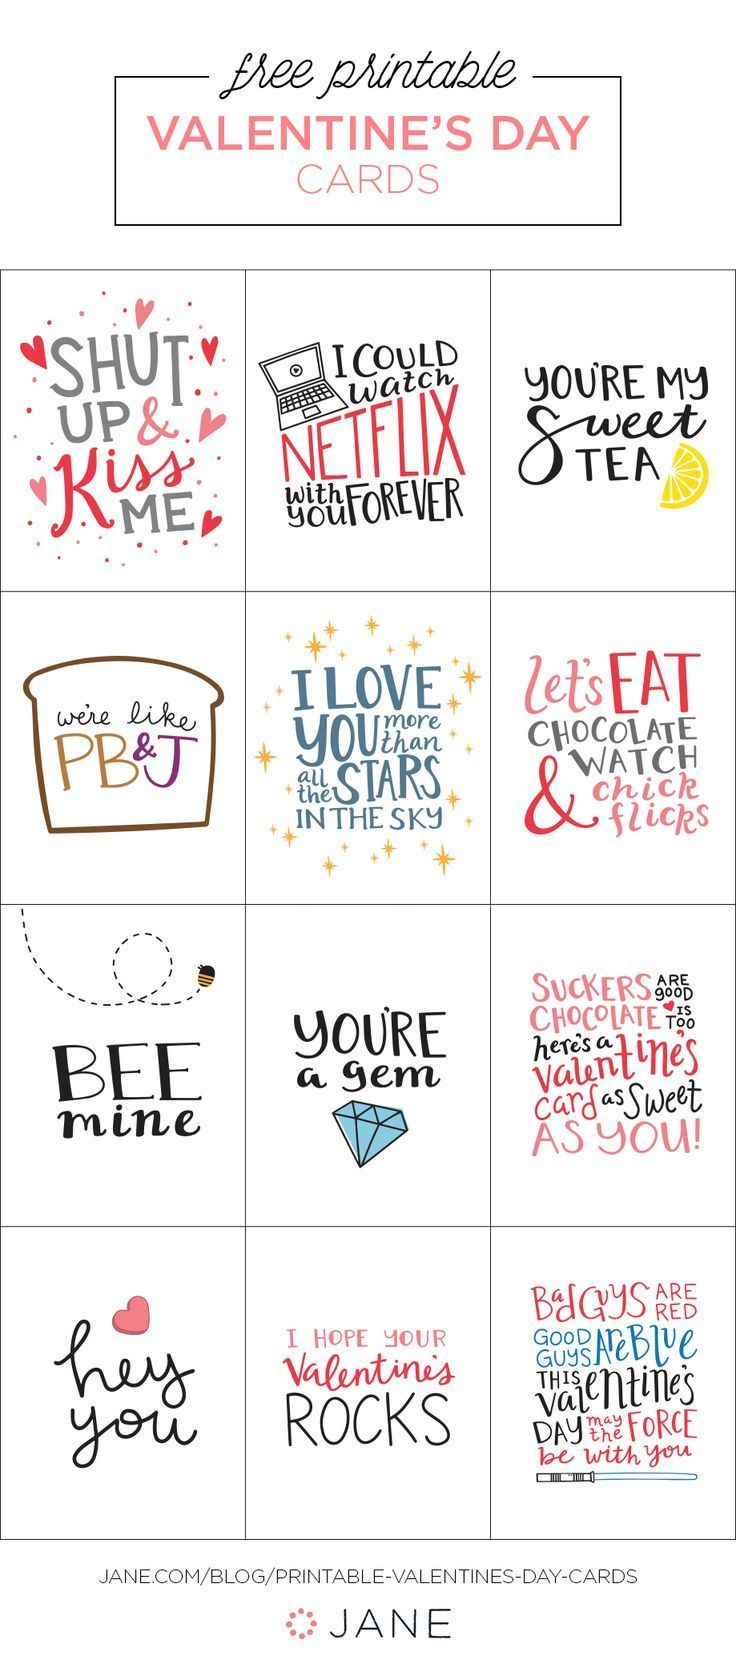 Valentine color by number printables - Printable Valentine S Day Cards From Http Jane Com